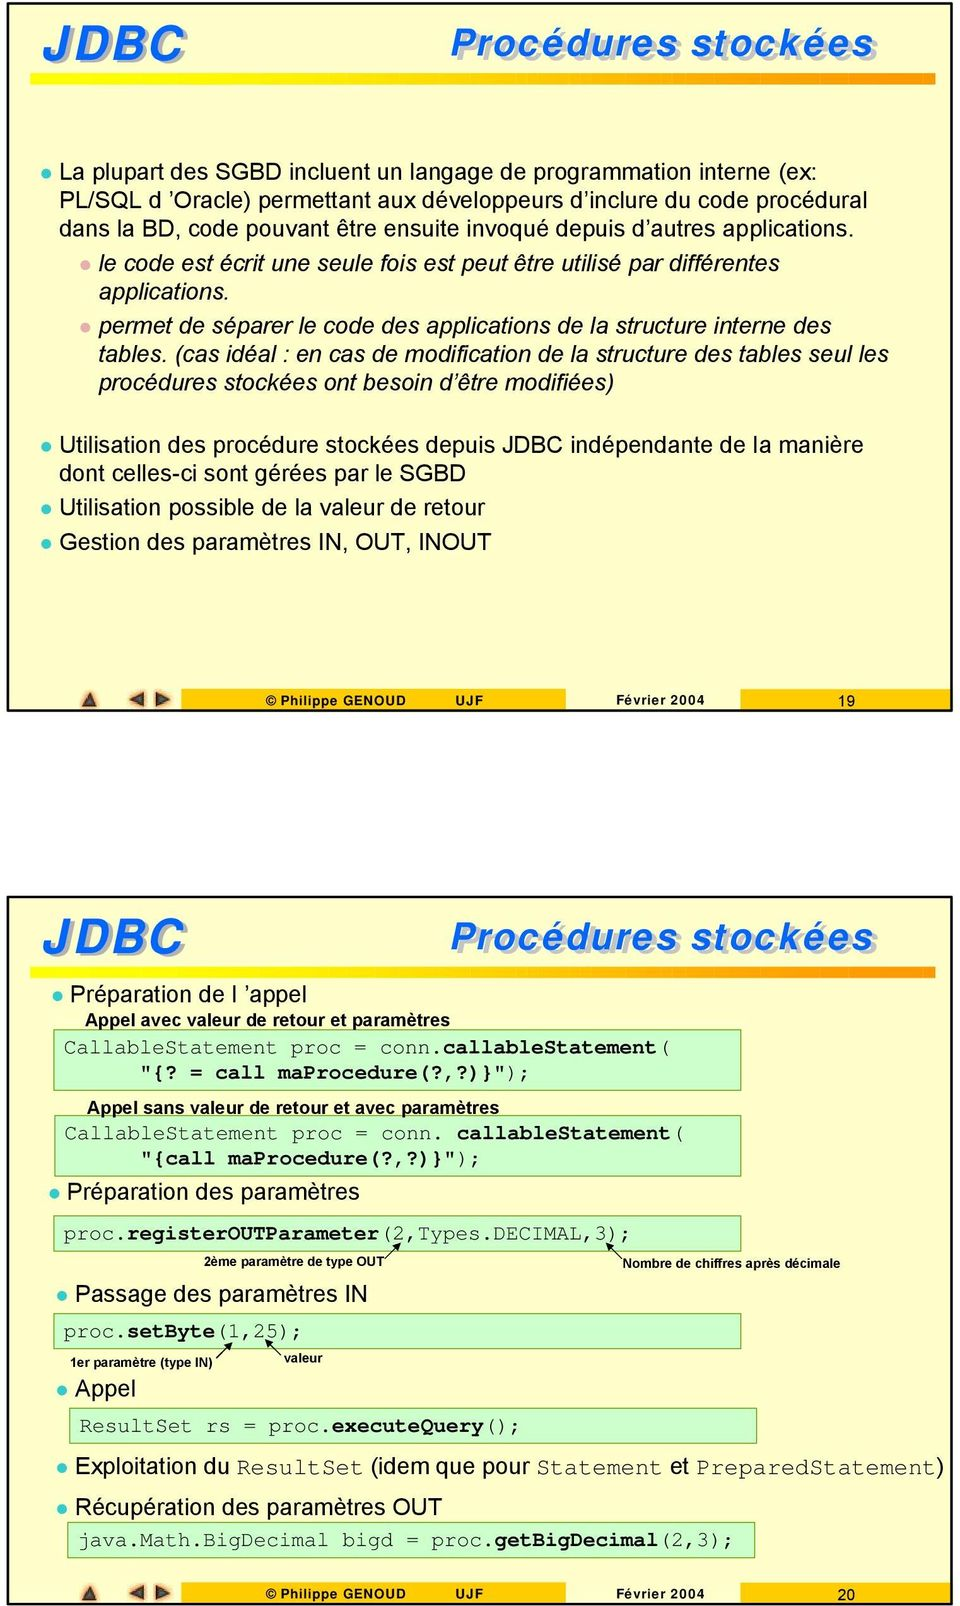 permet de séparer le code des applications de la structure interne des tables.